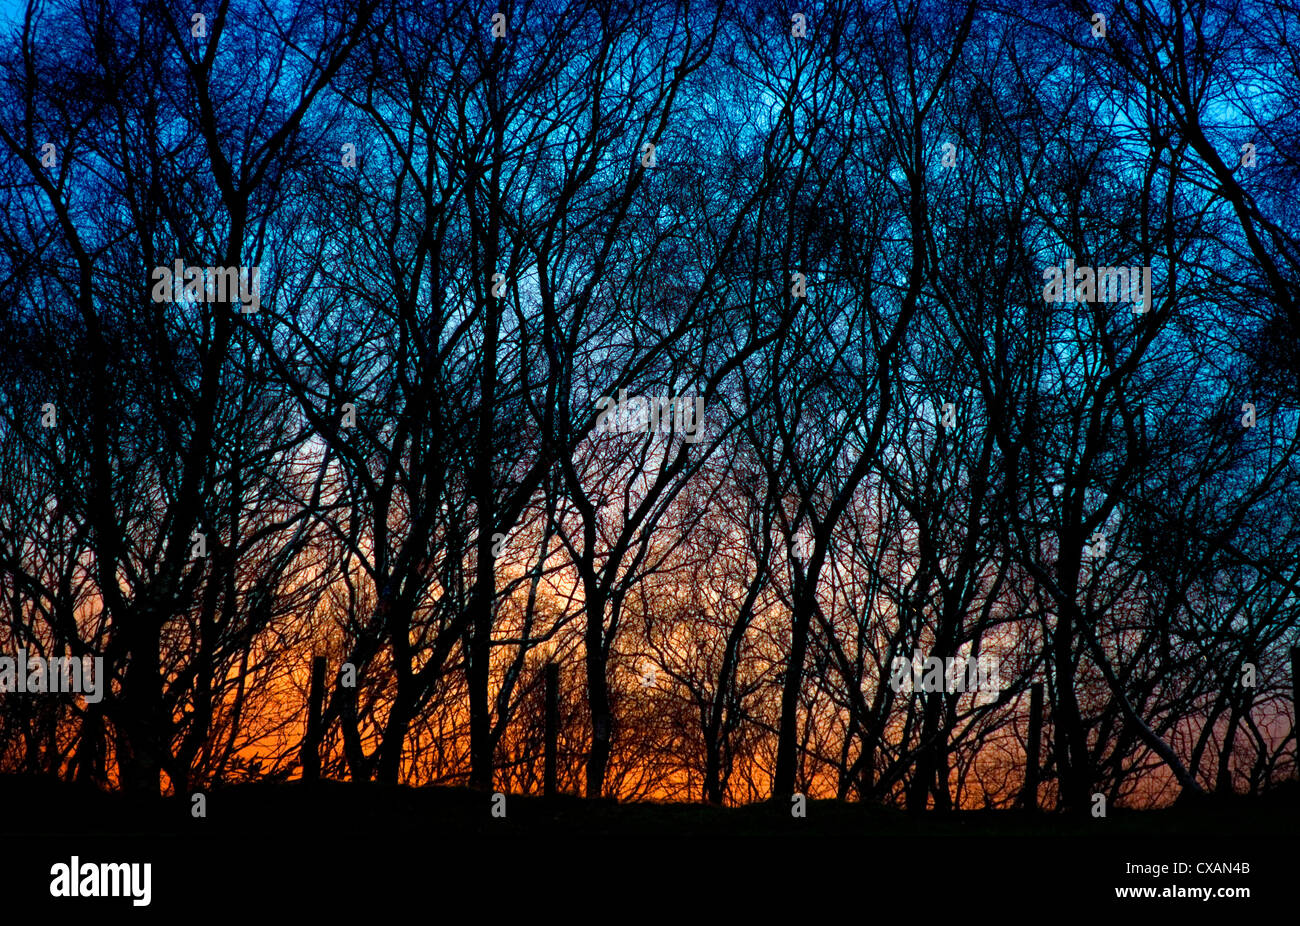 Sunset behind a stand of birch trees silhouetted against a deep blue sky, Perthshire, Scottish Highlands. - Stock Image